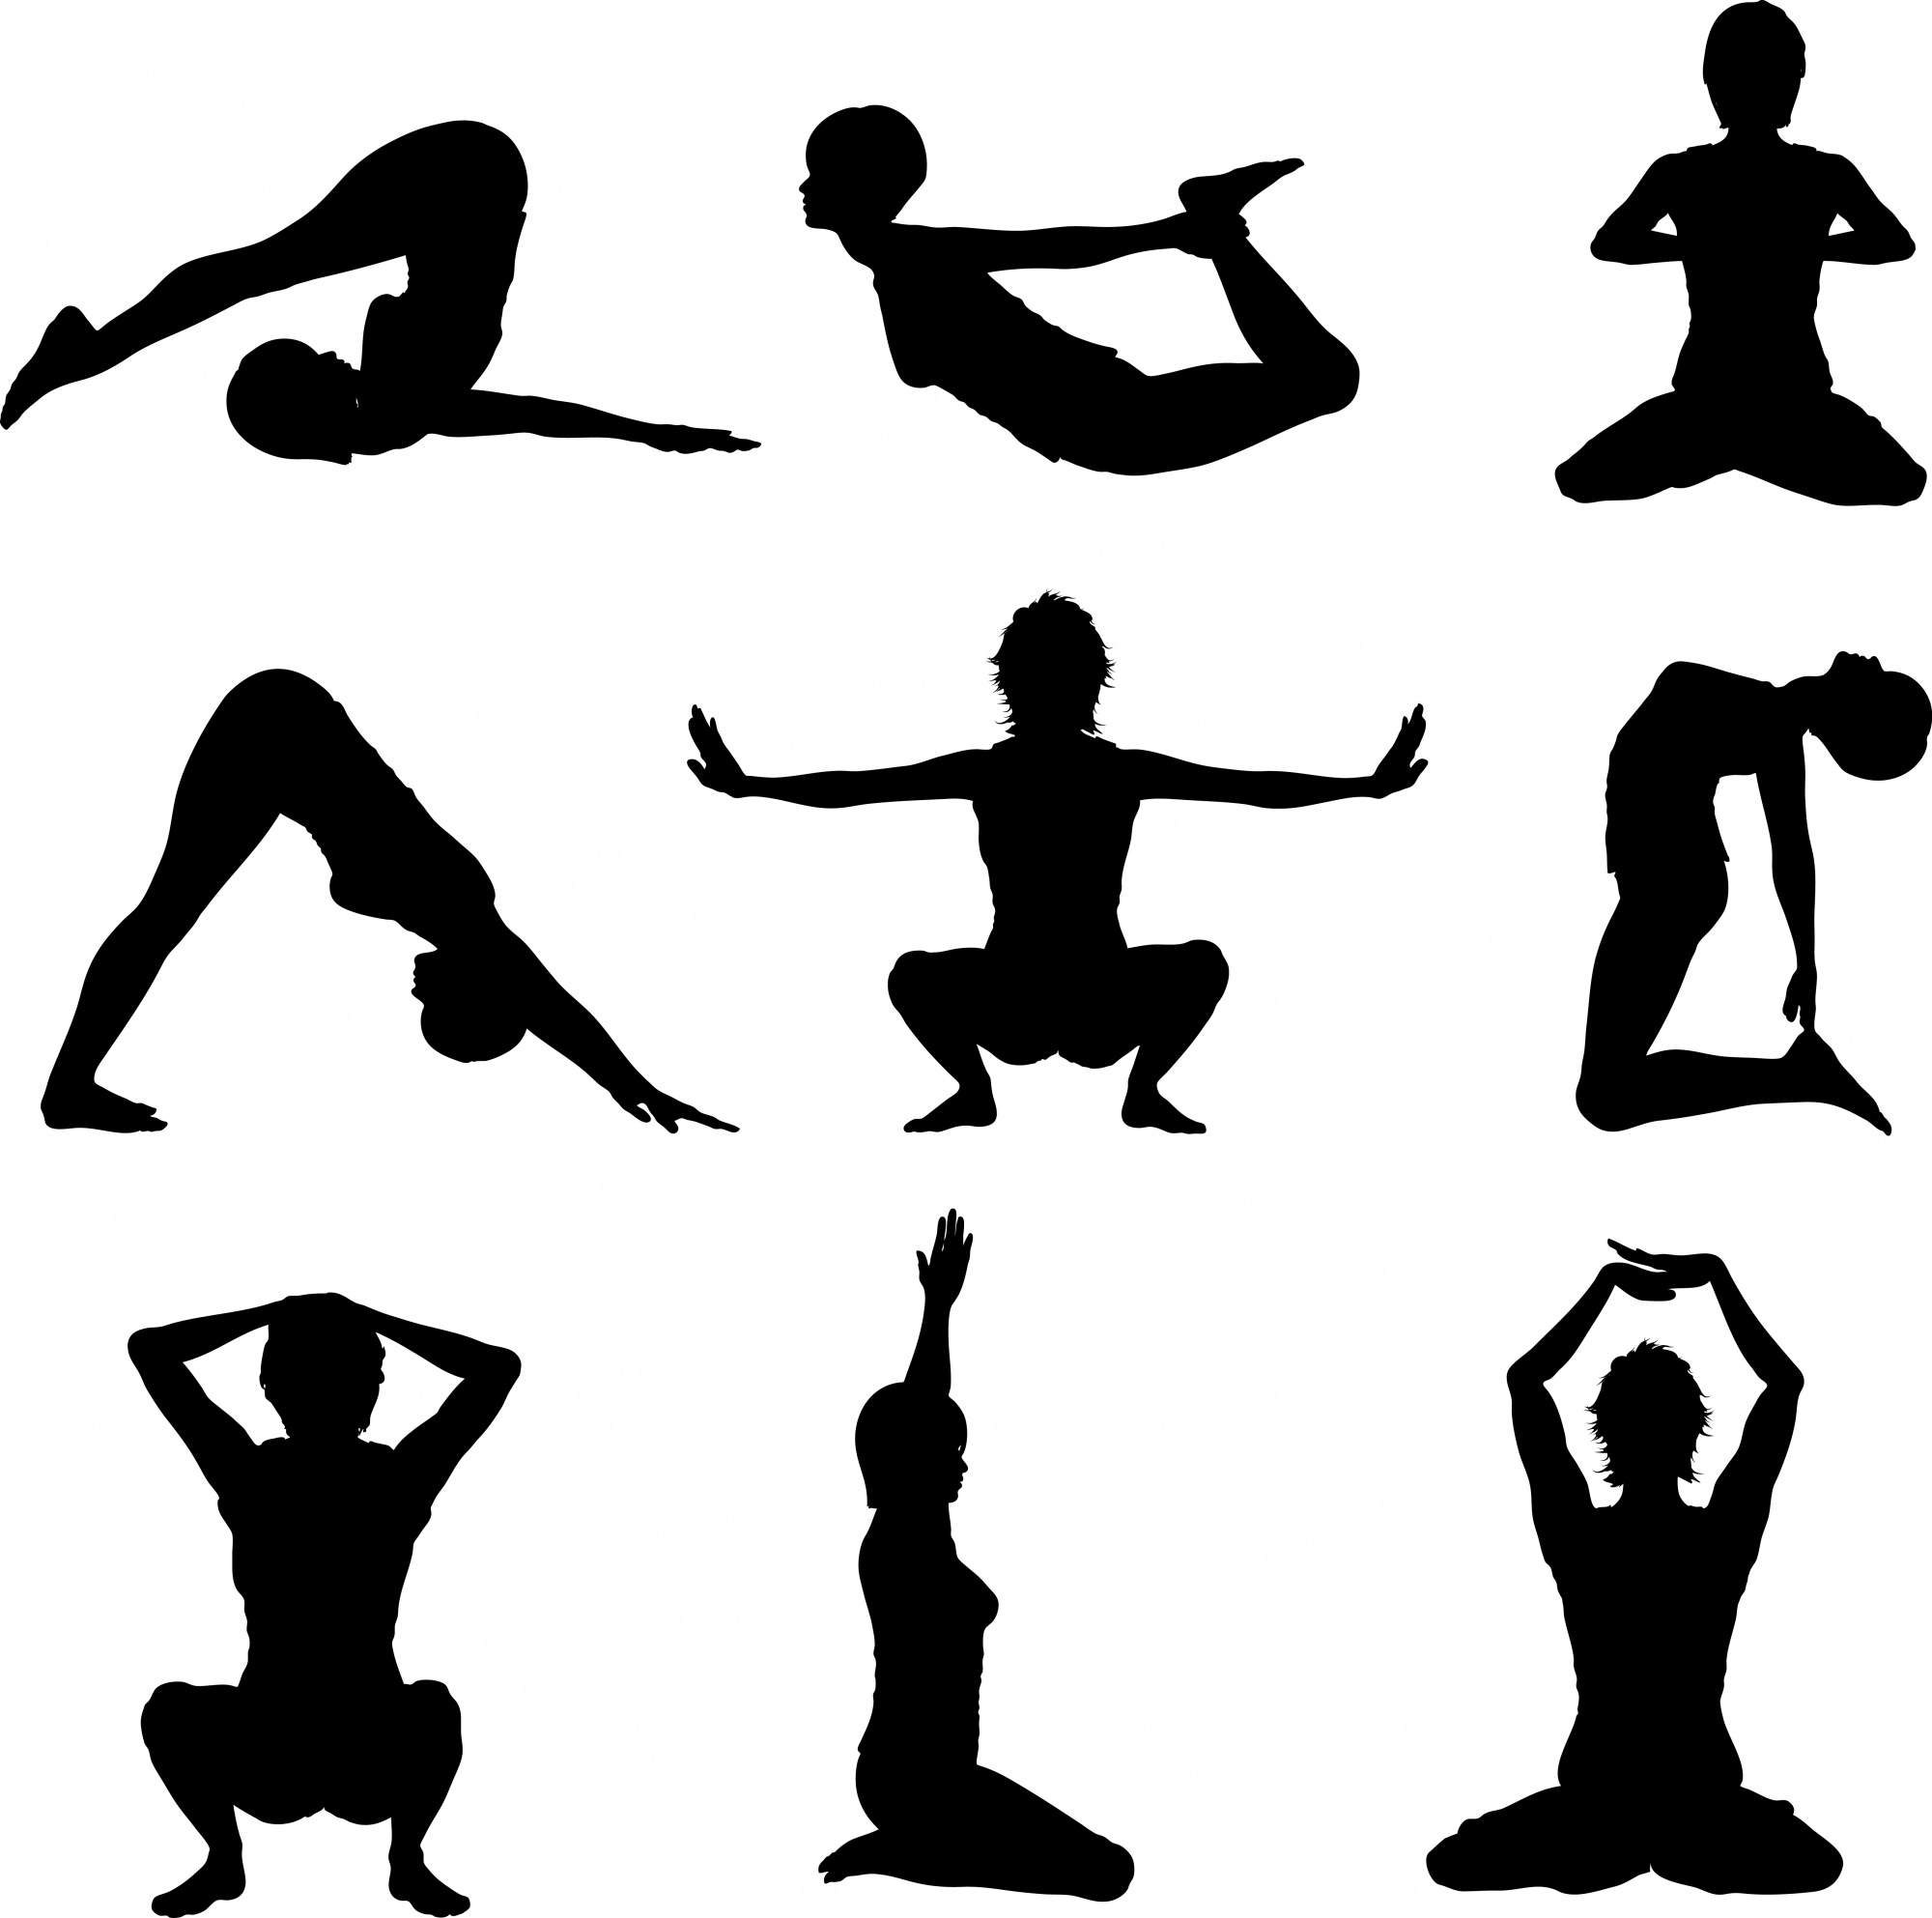 Sagome di donne in varie pose di yoga